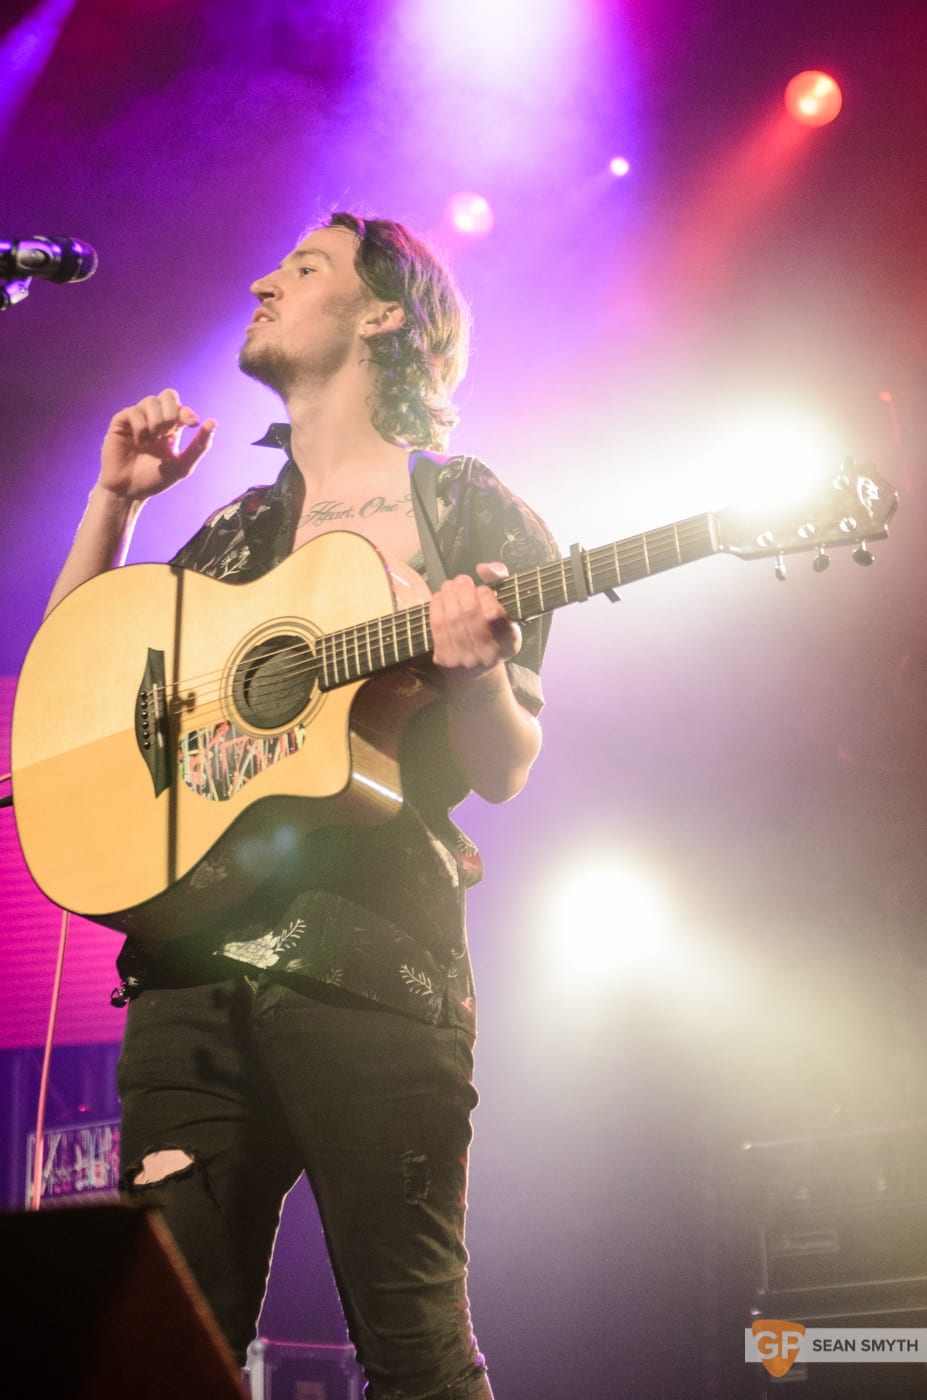 picture-this-at-the-olympia-theatre-by-sean-smyth-2-11-16-10-of-20